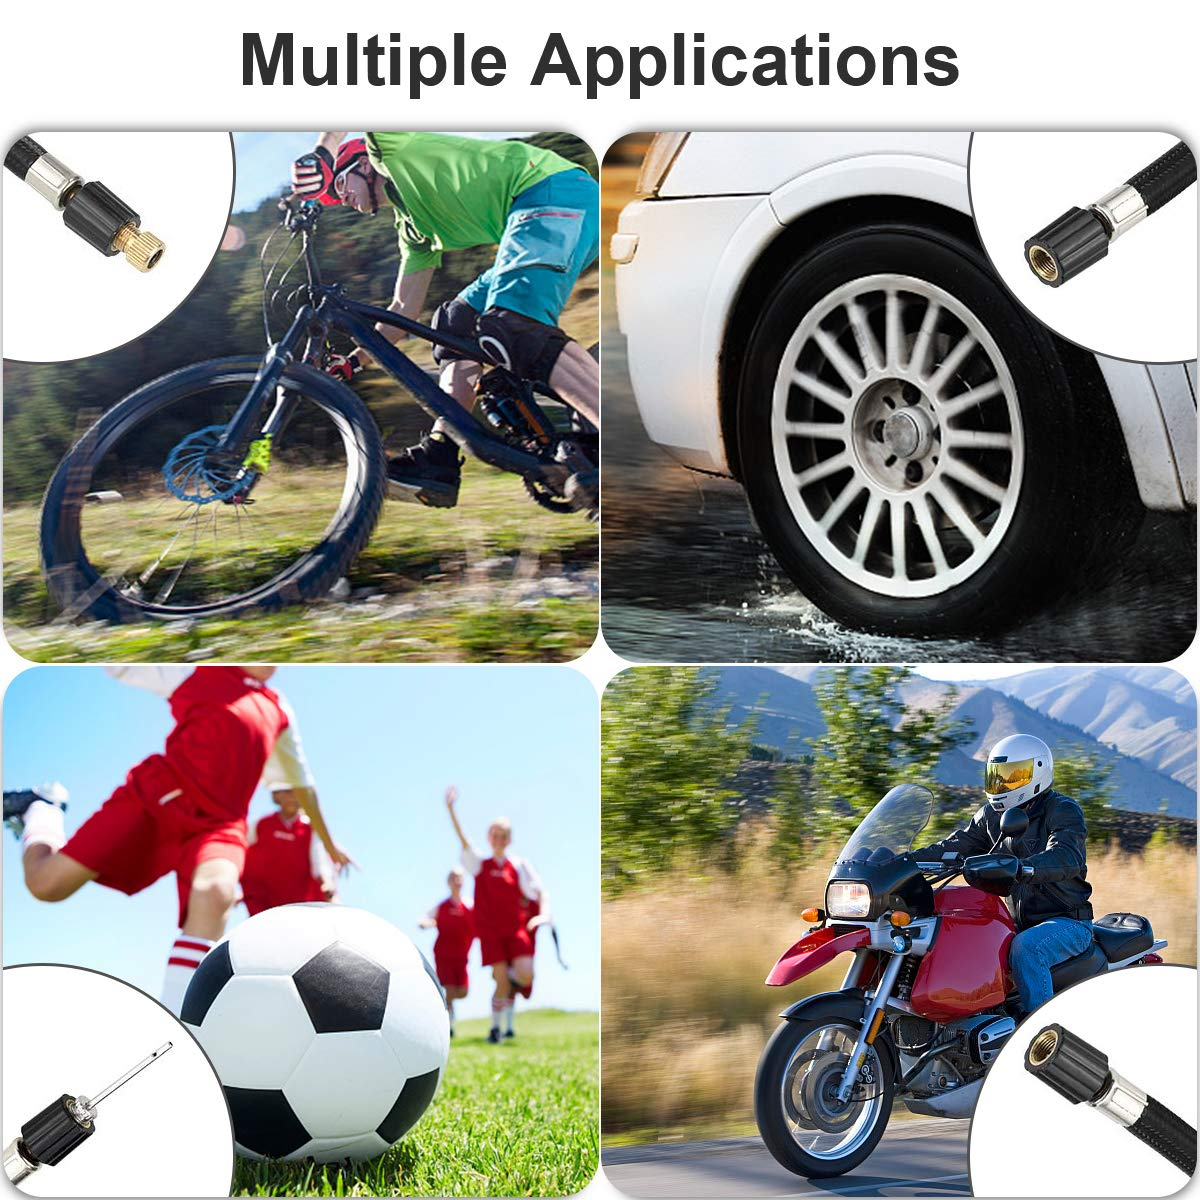 Mini Electric Bike Tyre Pump with Adapter Set morpilot Cordless Tyre Inflator Air Compressor LCD Screen 4 Preset /& 1 Custom Modes for Car LED Light 20L//M, 0-100PSI Motorcycle Football Cycle